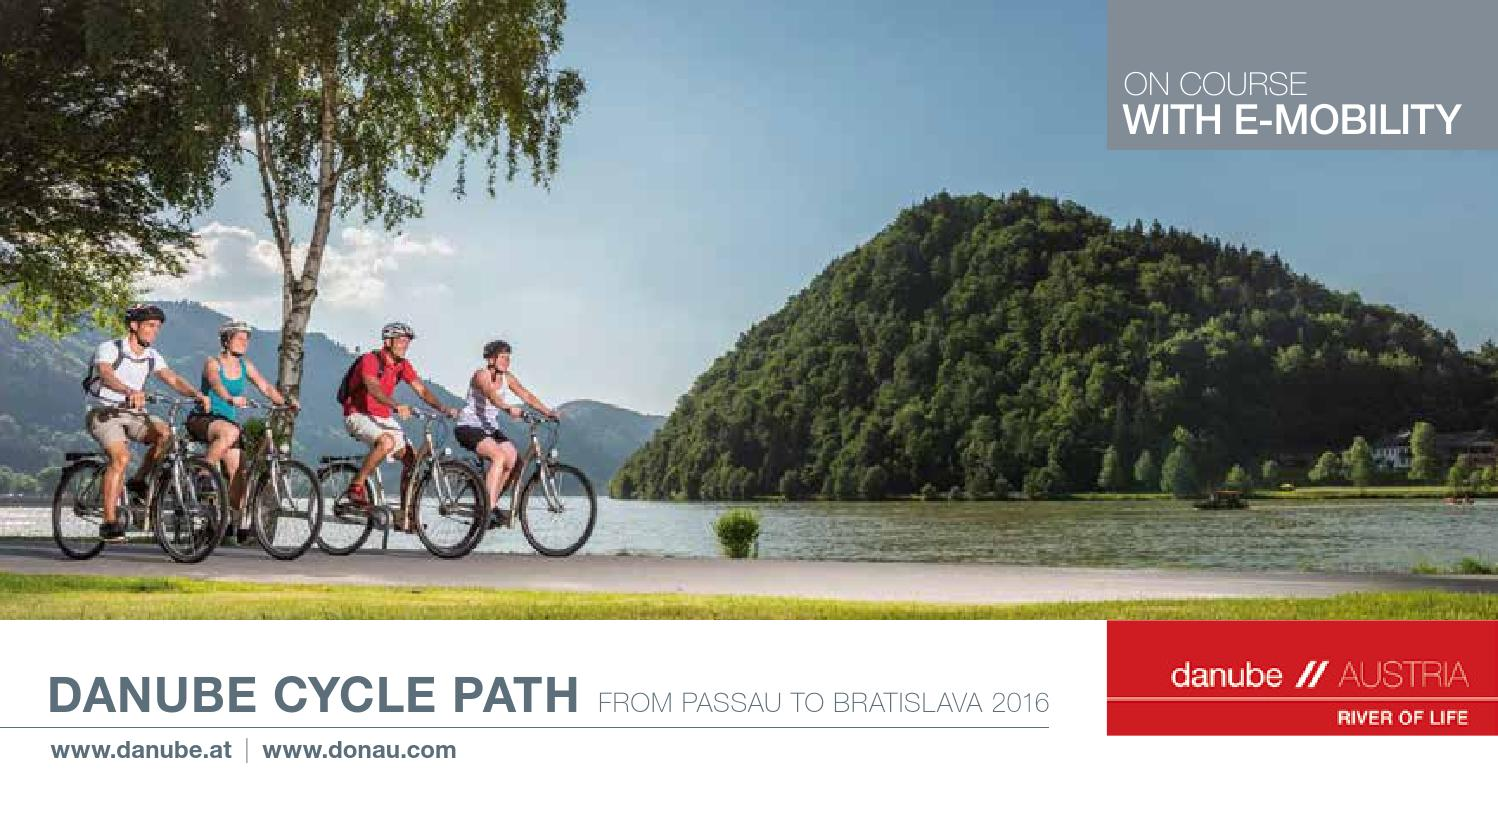 Danube Cycle Path 2016 by Silvia Ebner - issuu c8e0d061fc21d